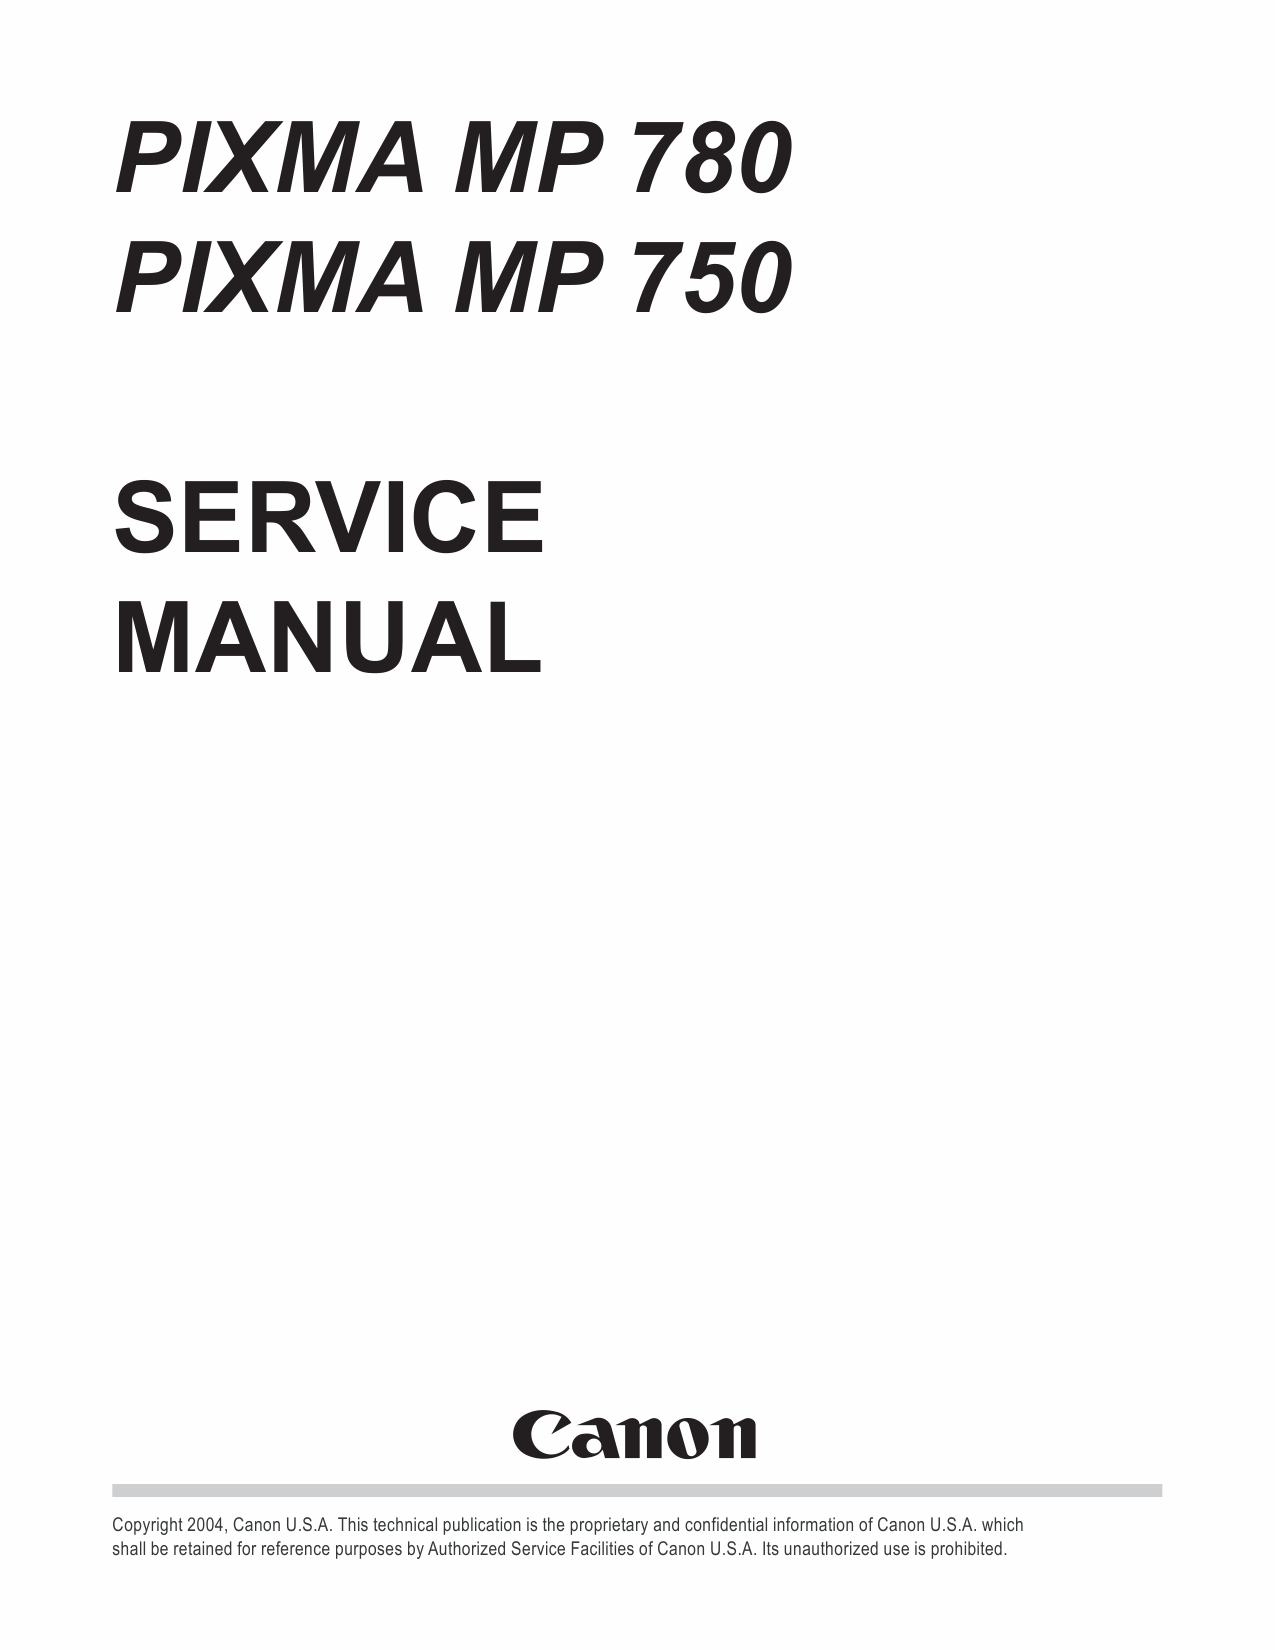 Canon PIXMA MP780 MP750 Service Manual-1